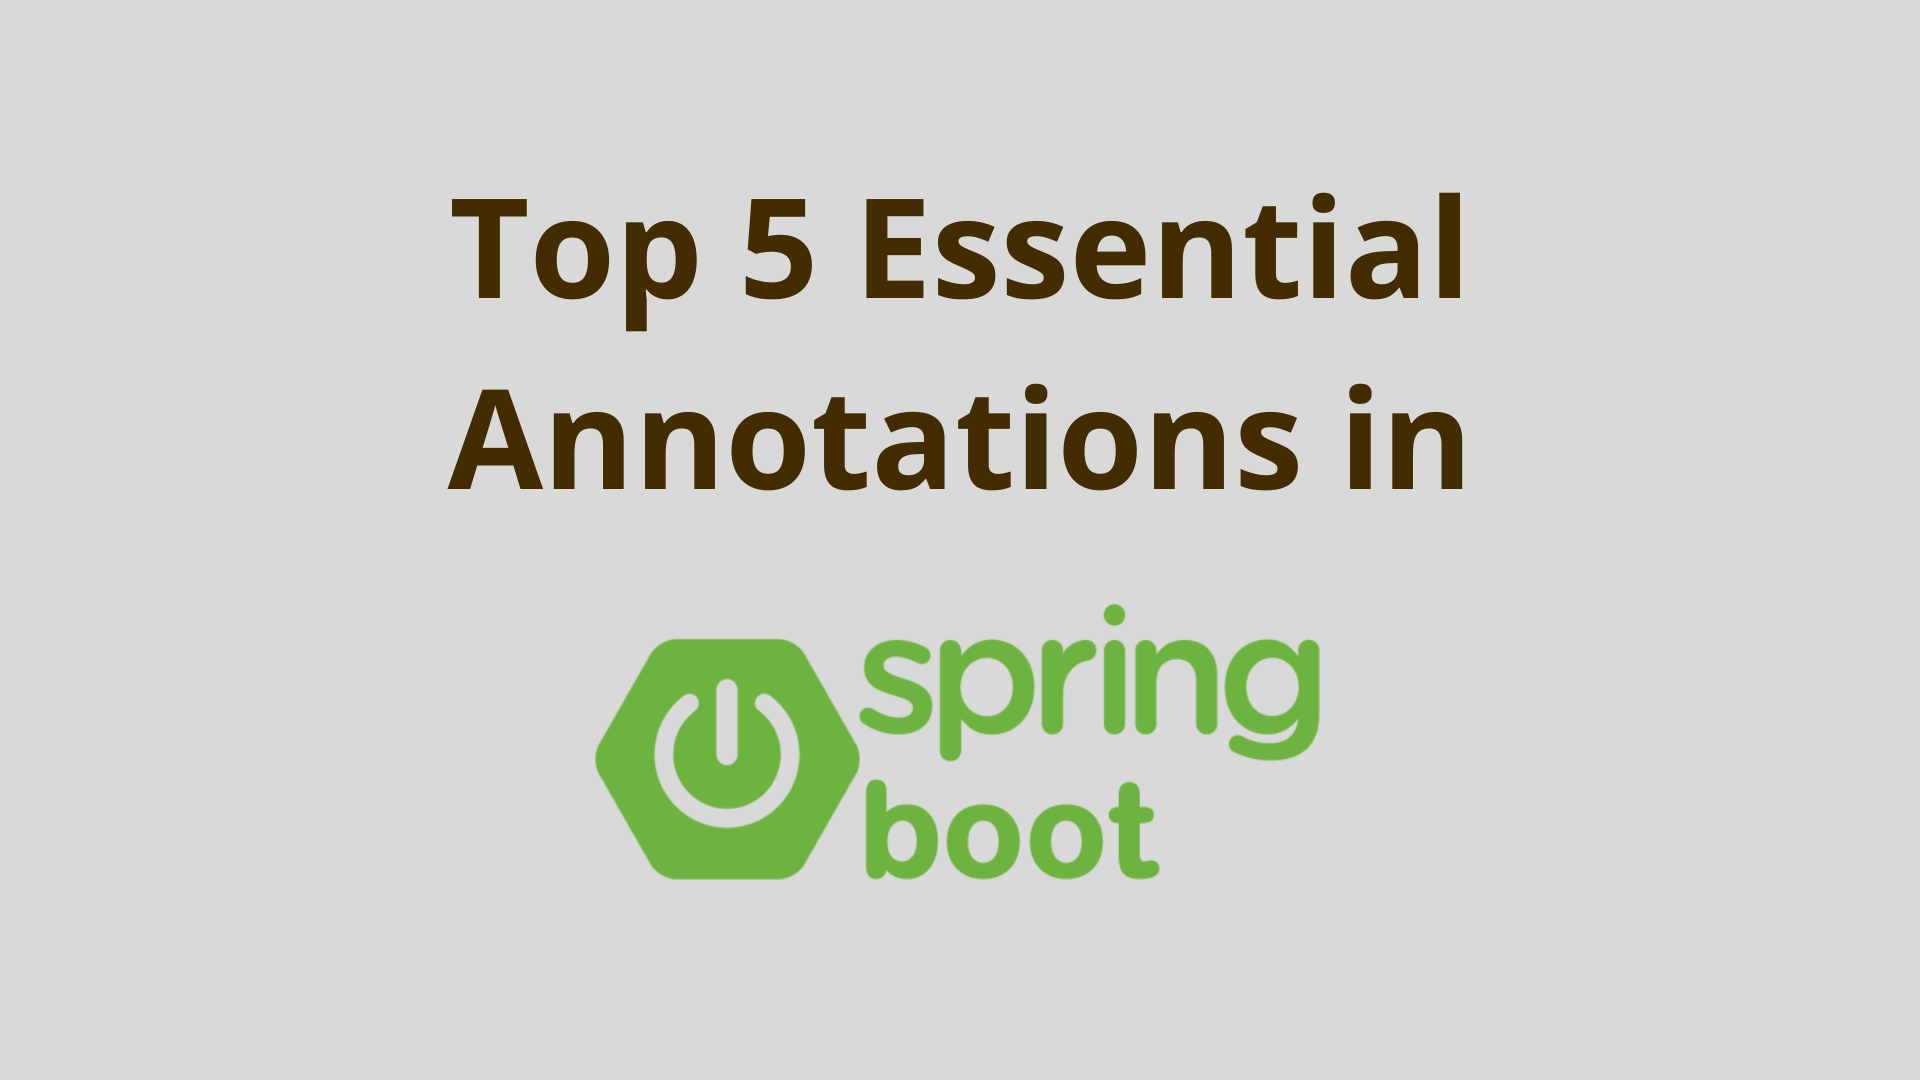 Image of 5 essential Spring Boot annotations